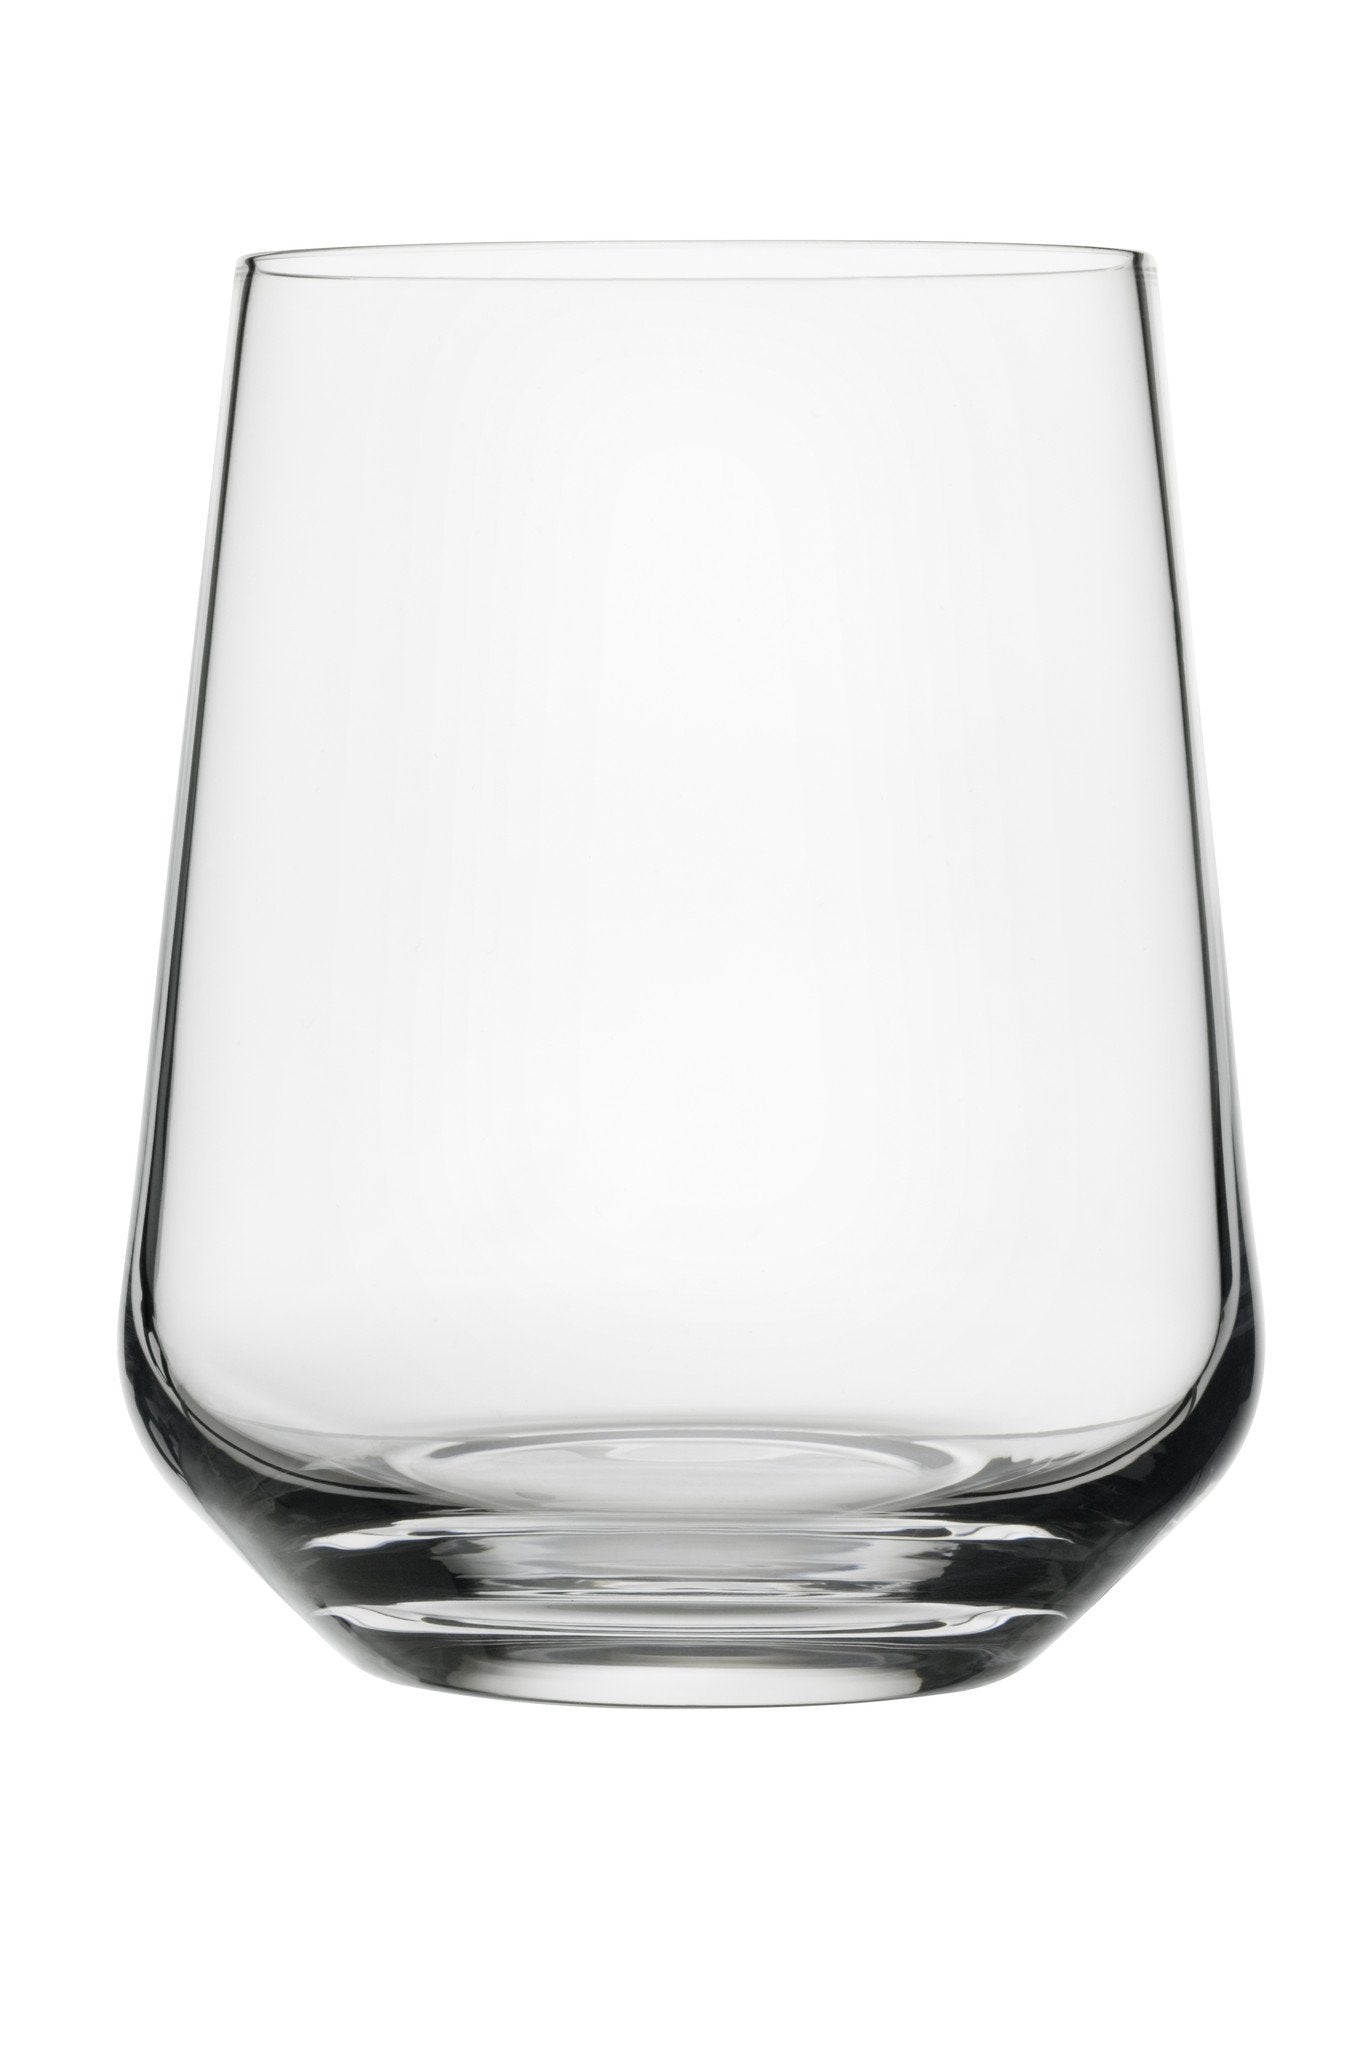 Iittala, Essence Tumbler, Set of 2- Placewares